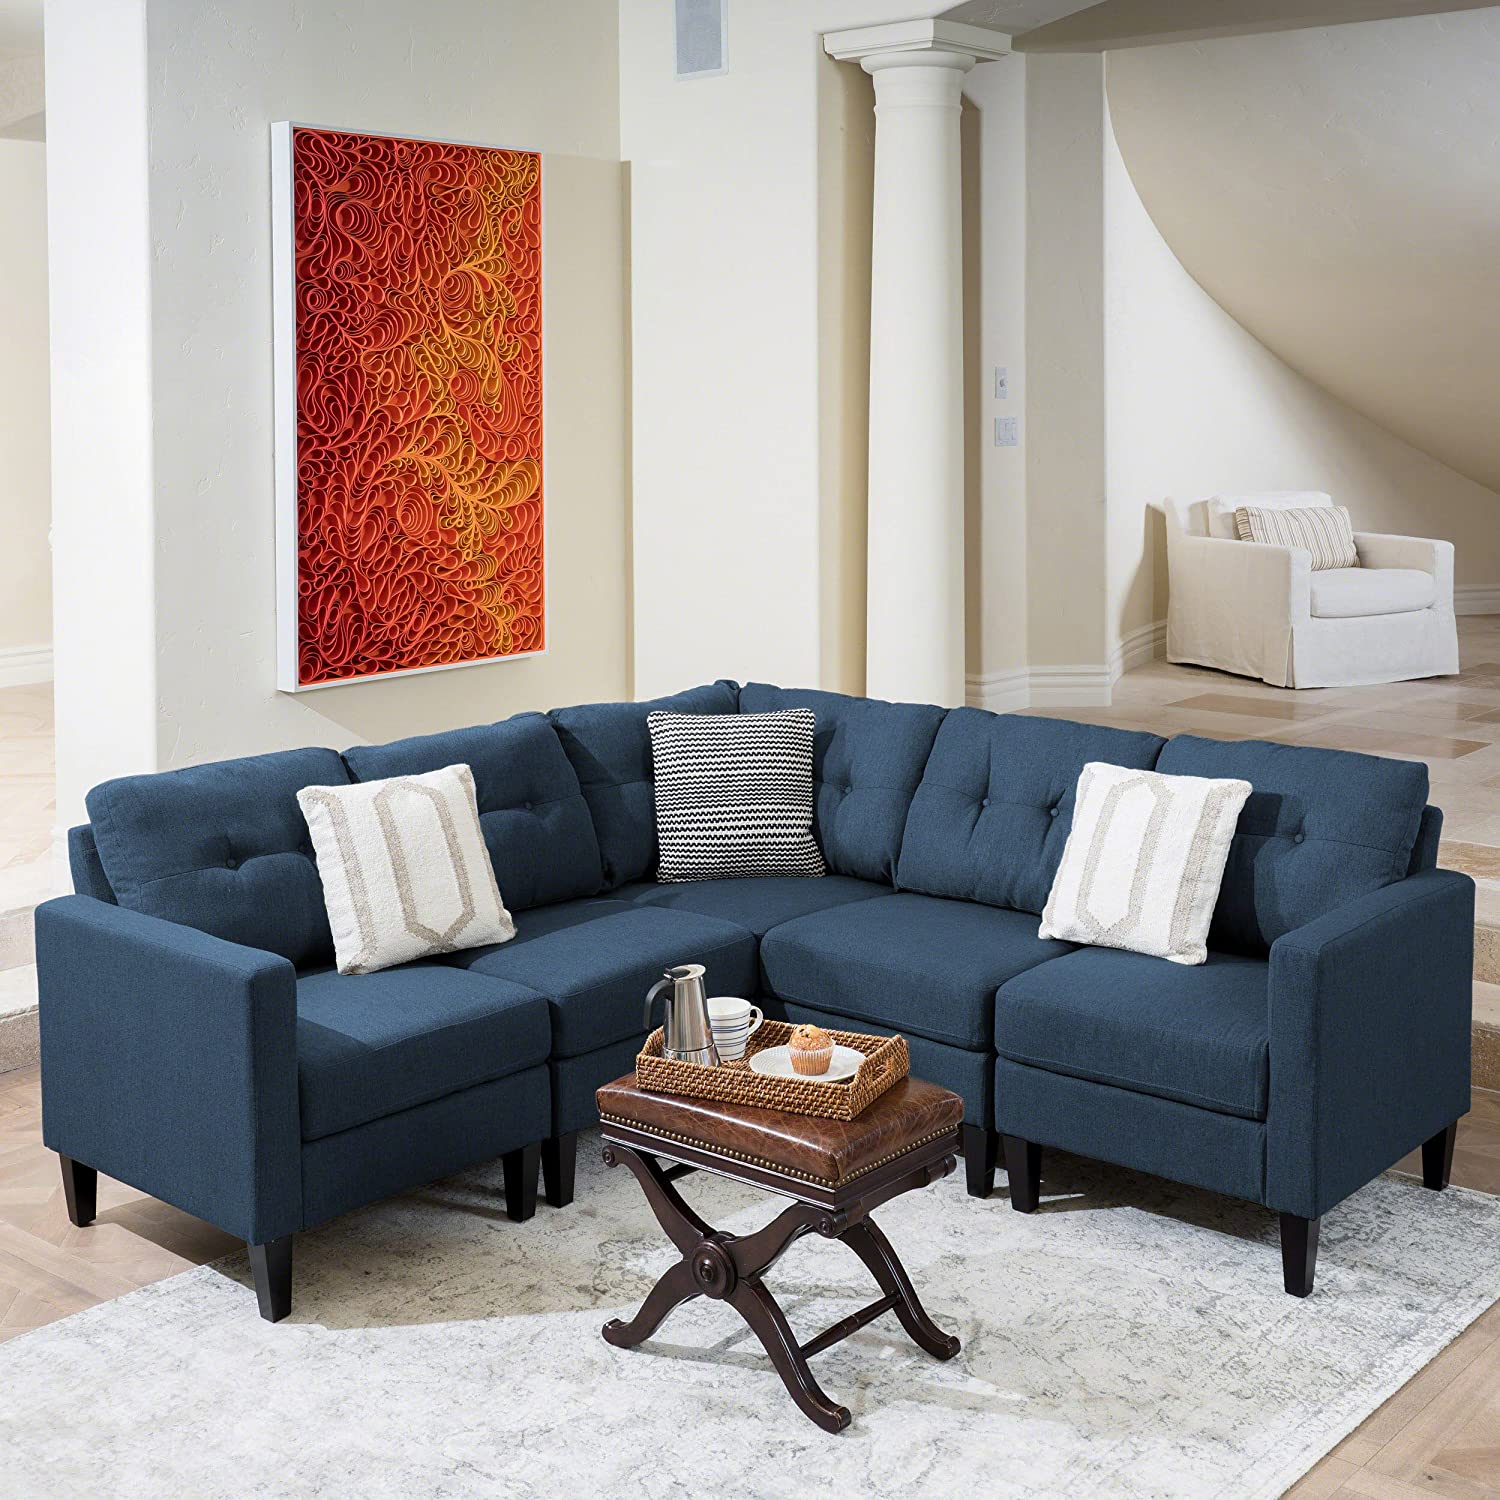 Christopher Night Home sectional sofa for small Living Rooms